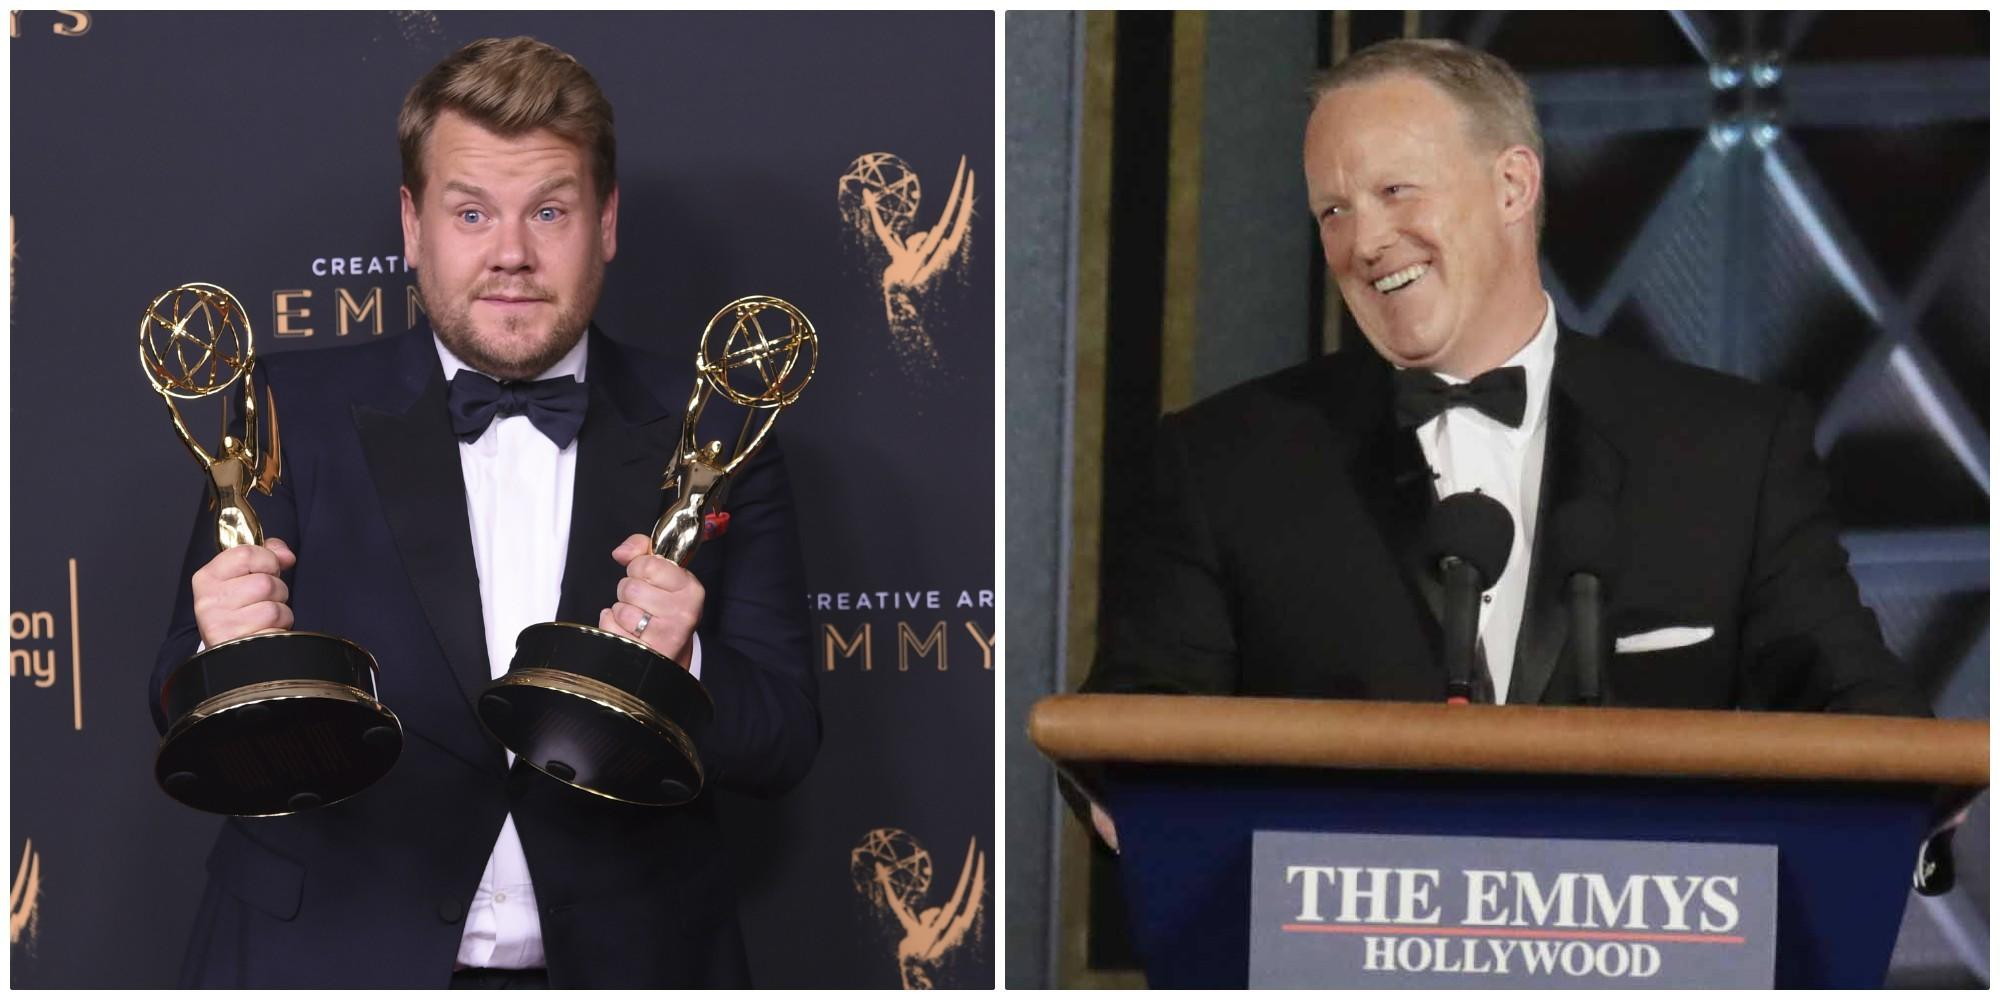 James Corden and Sean Spicer (Richard Shotwell / Invision / AP; Robert Gauthier / Los Angeles Times)